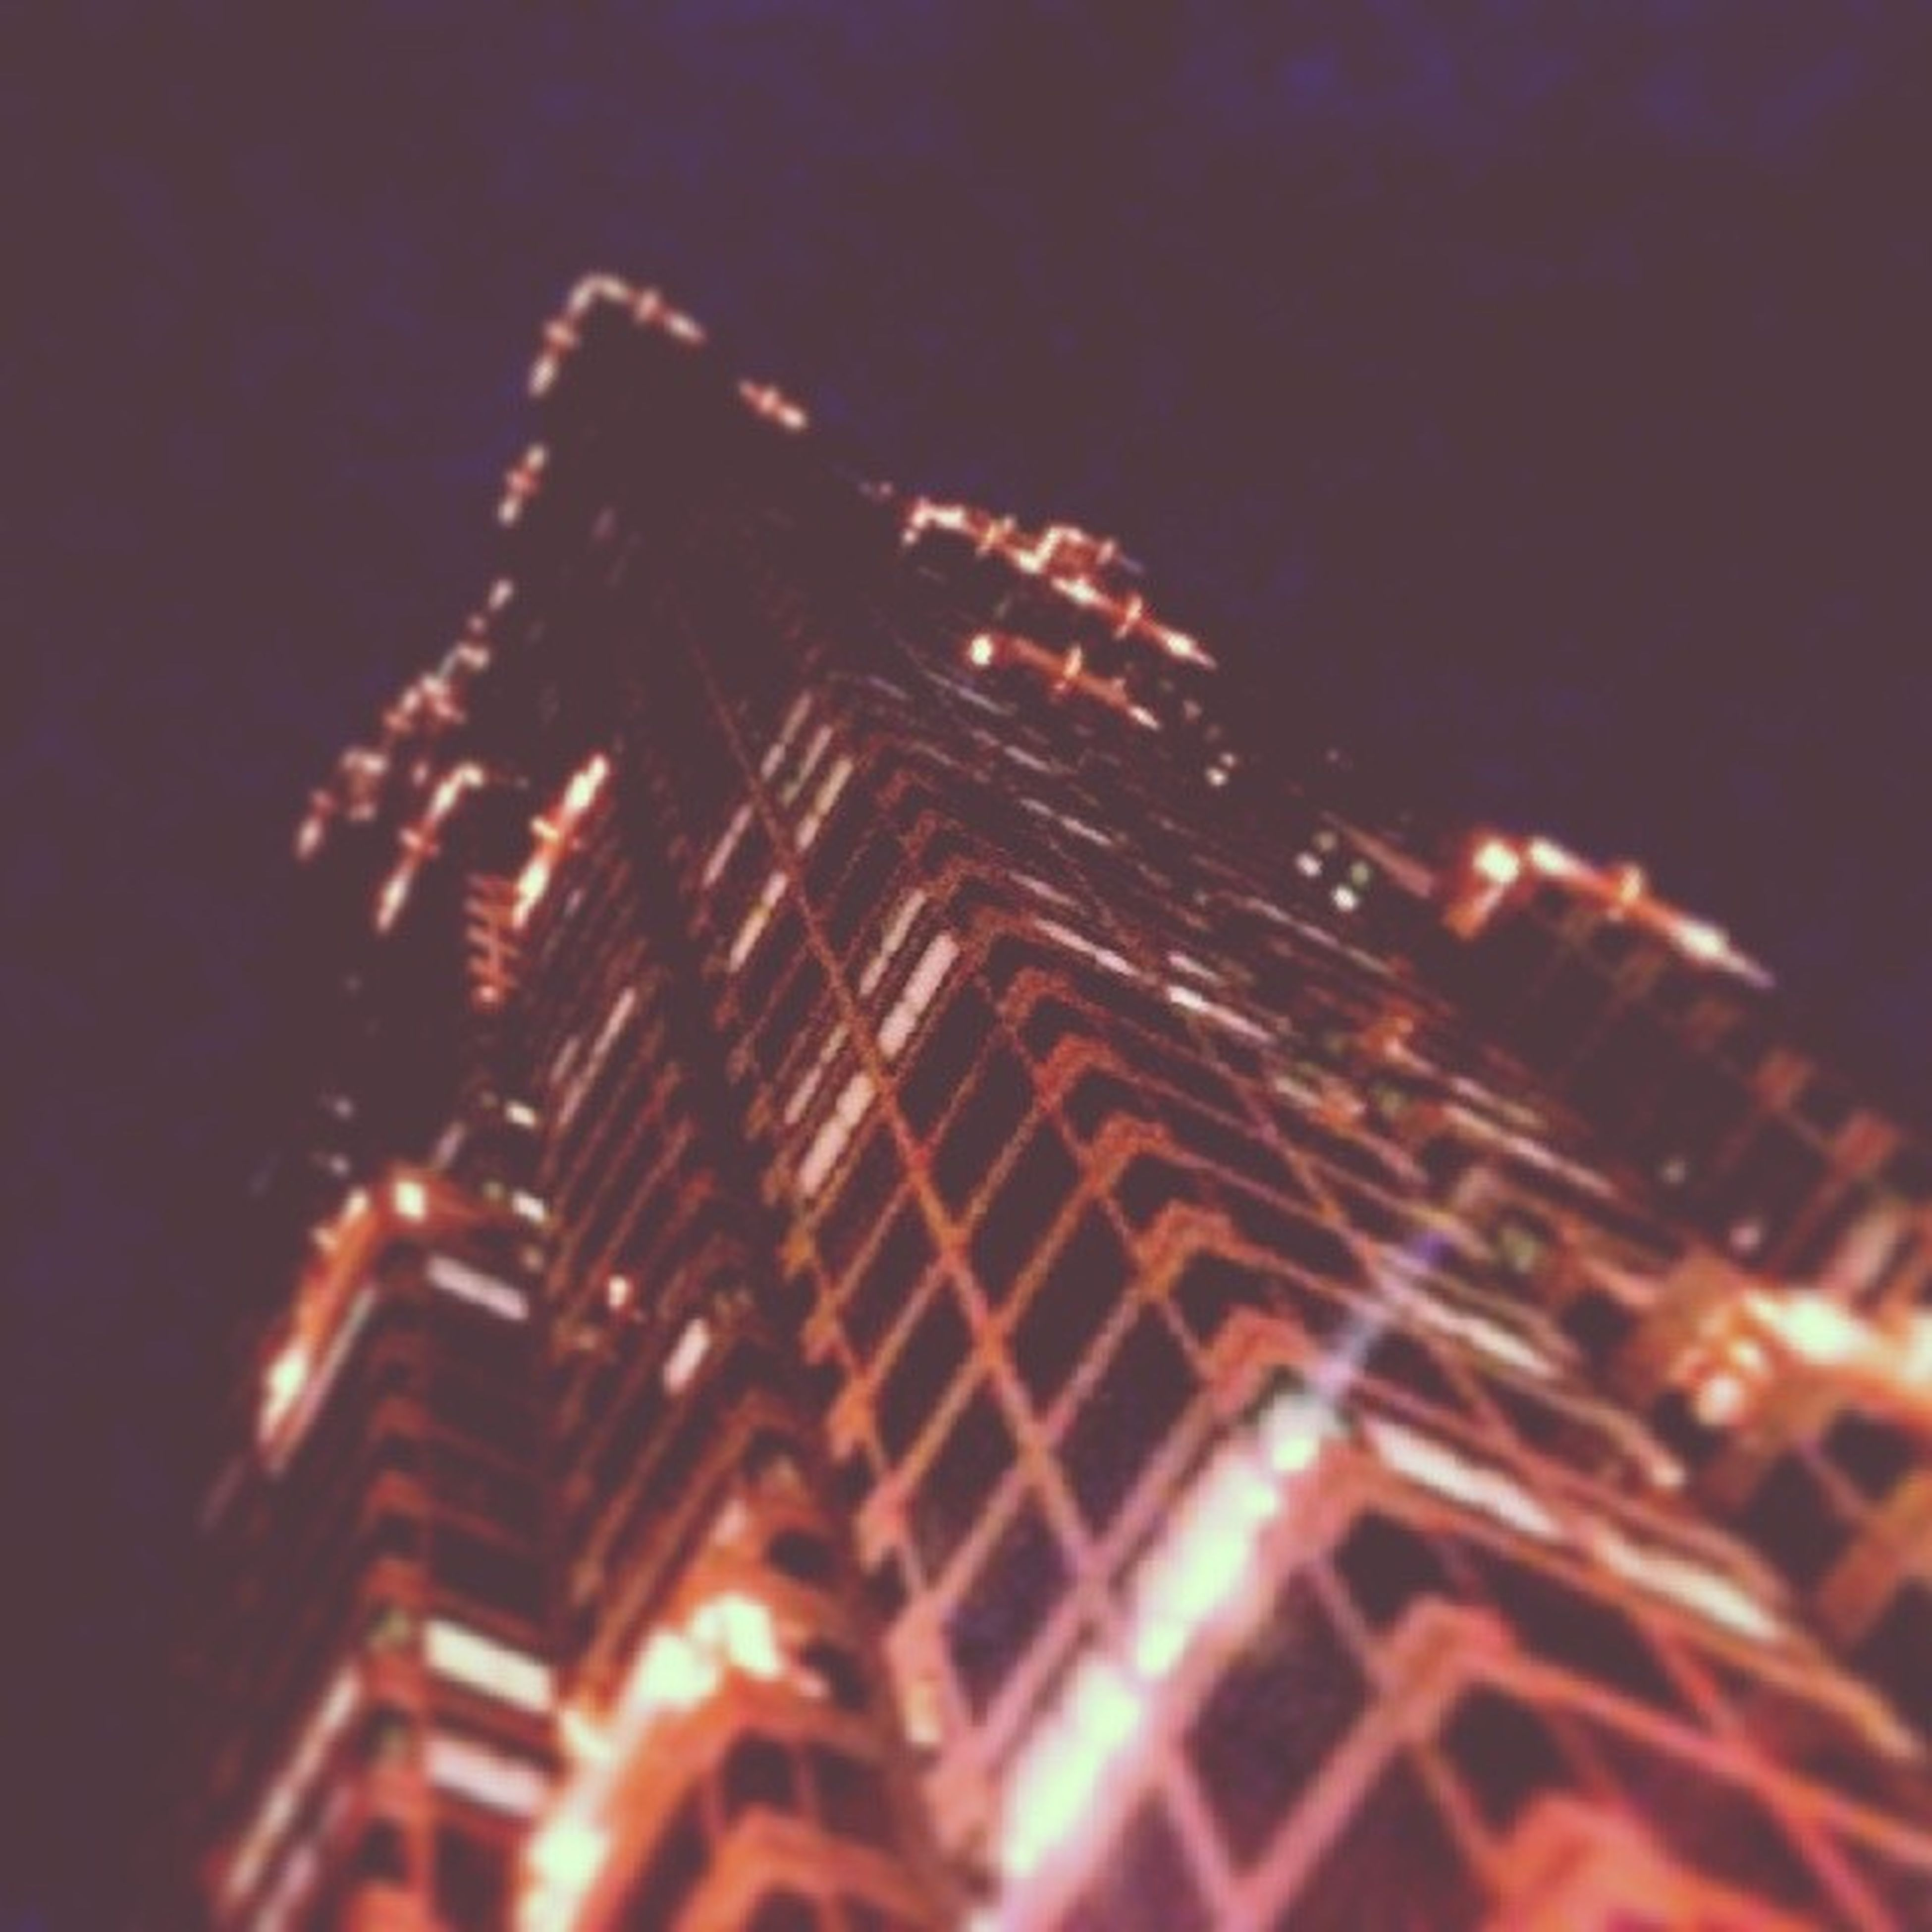 night, illuminated, architecture, built structure, building exterior, low angle view, city, tall - high, sky, tower, skyscraper, modern, no people, outdoors, capital cities, famous place, travel destinations, building, lighting equipment, office building